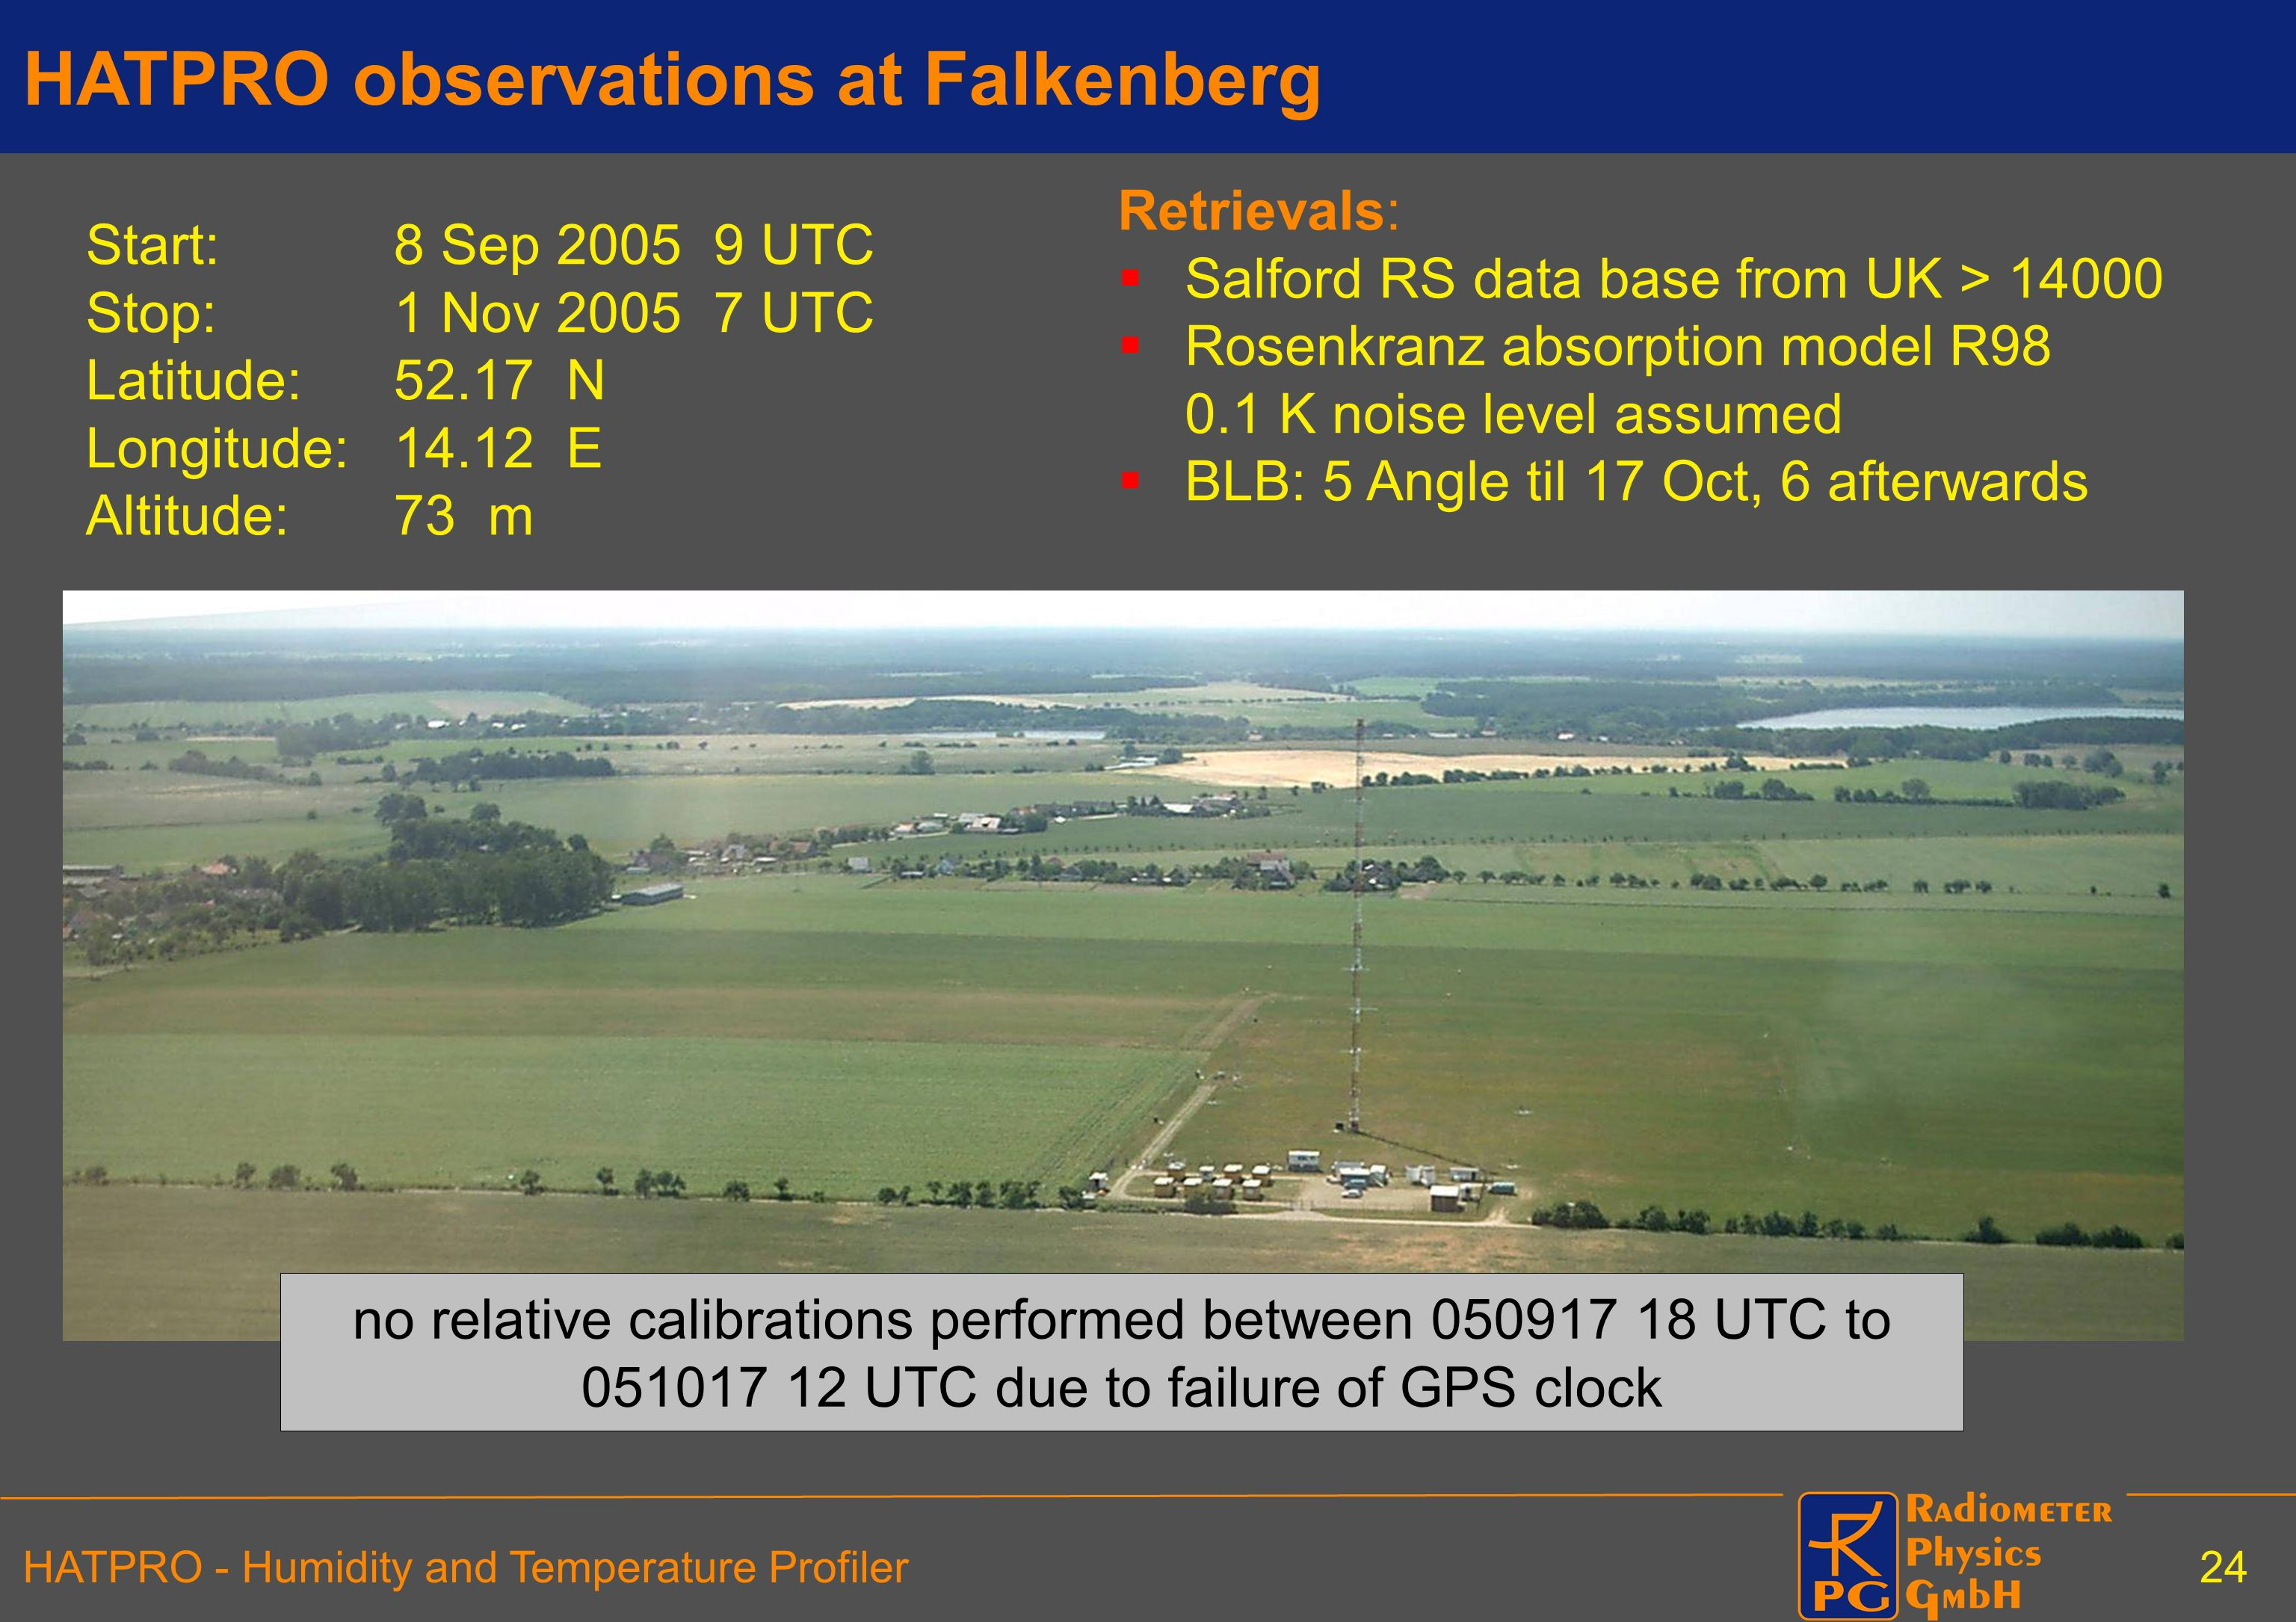 HATPRO observations at Falkenberg